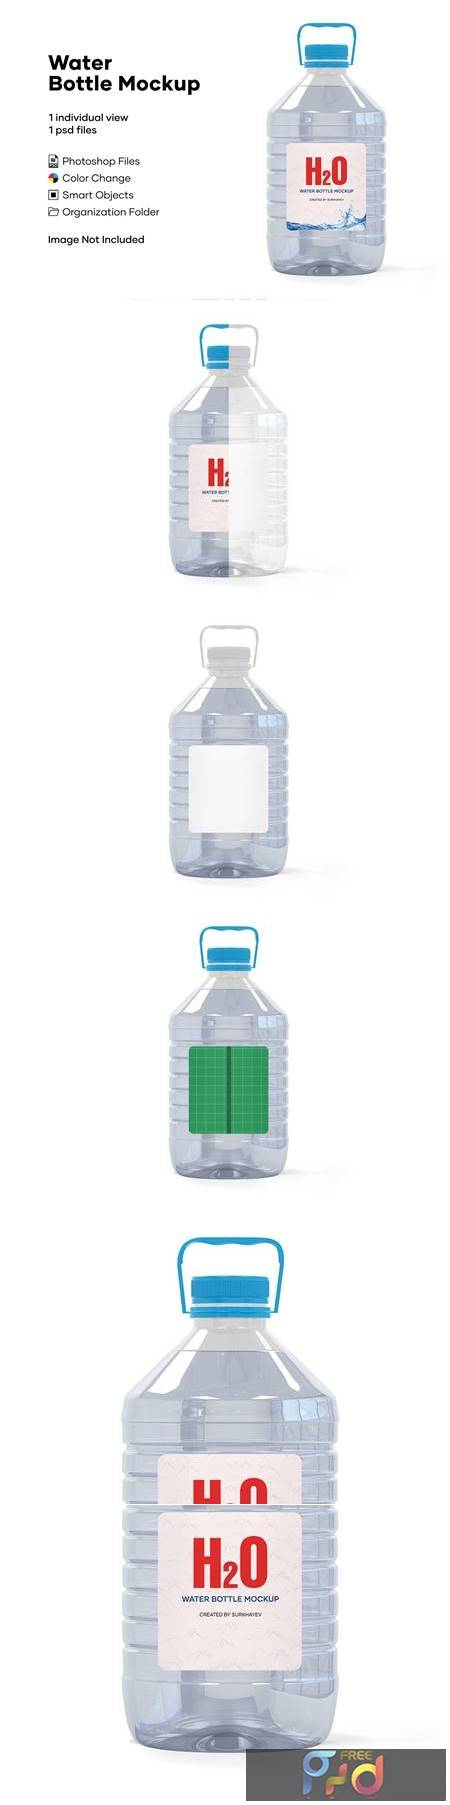 5L Clear PET Water Bottle Mockup 5233909 1